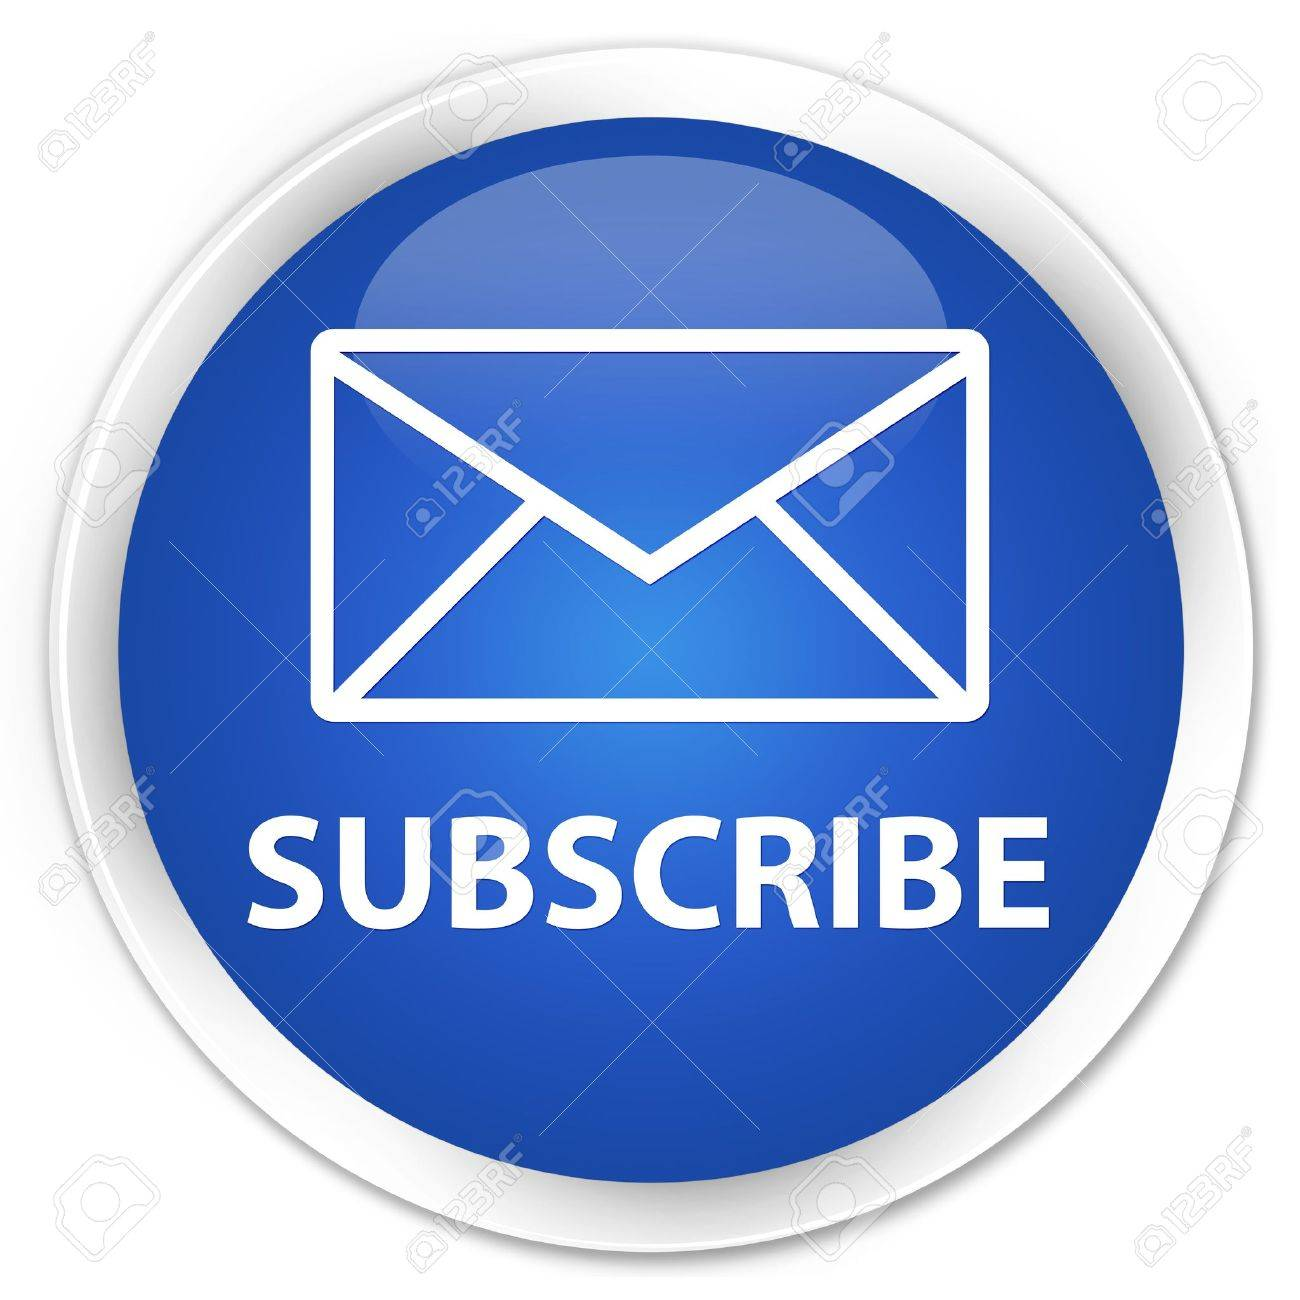 Subscribe glossy blue button Stock Photo - 15843420